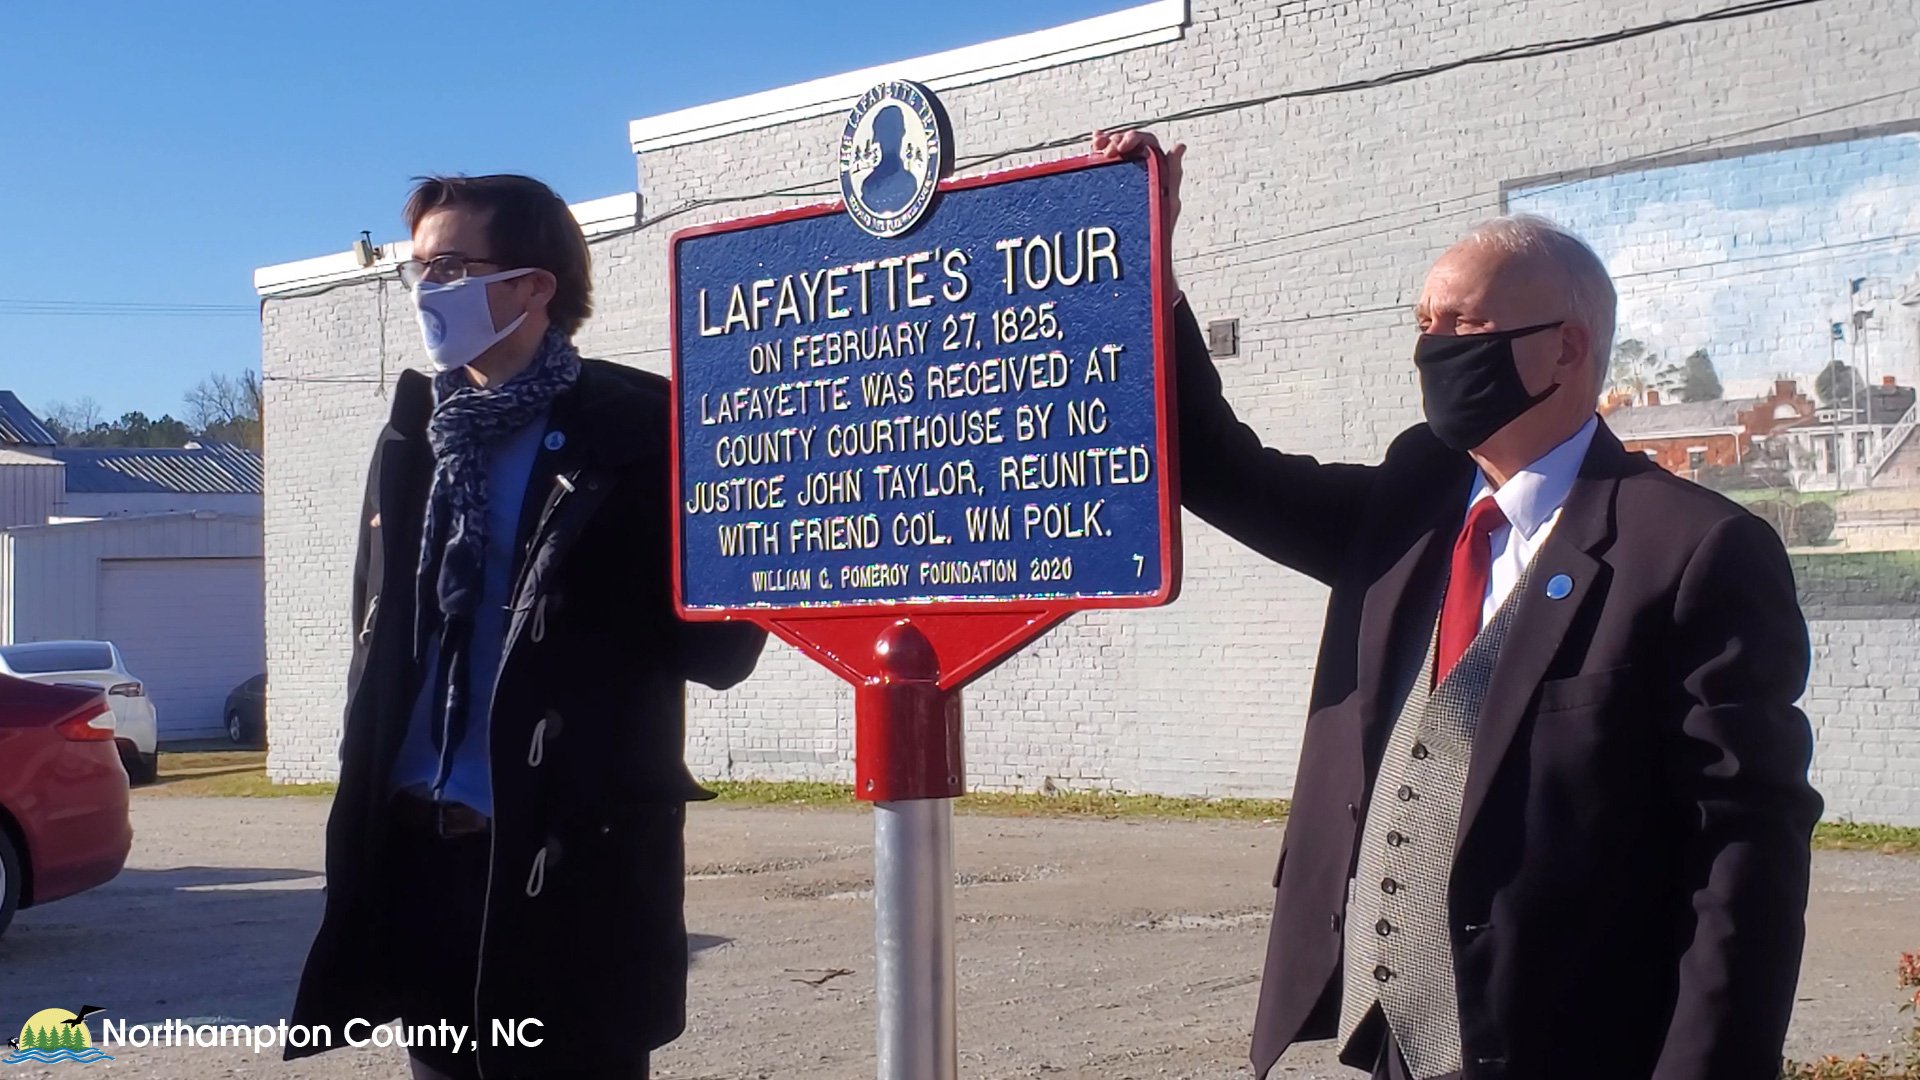 Julien P. lcher, the Founder and President of The Lafayette Trail, Inc. reveals marker in Jackson, NC